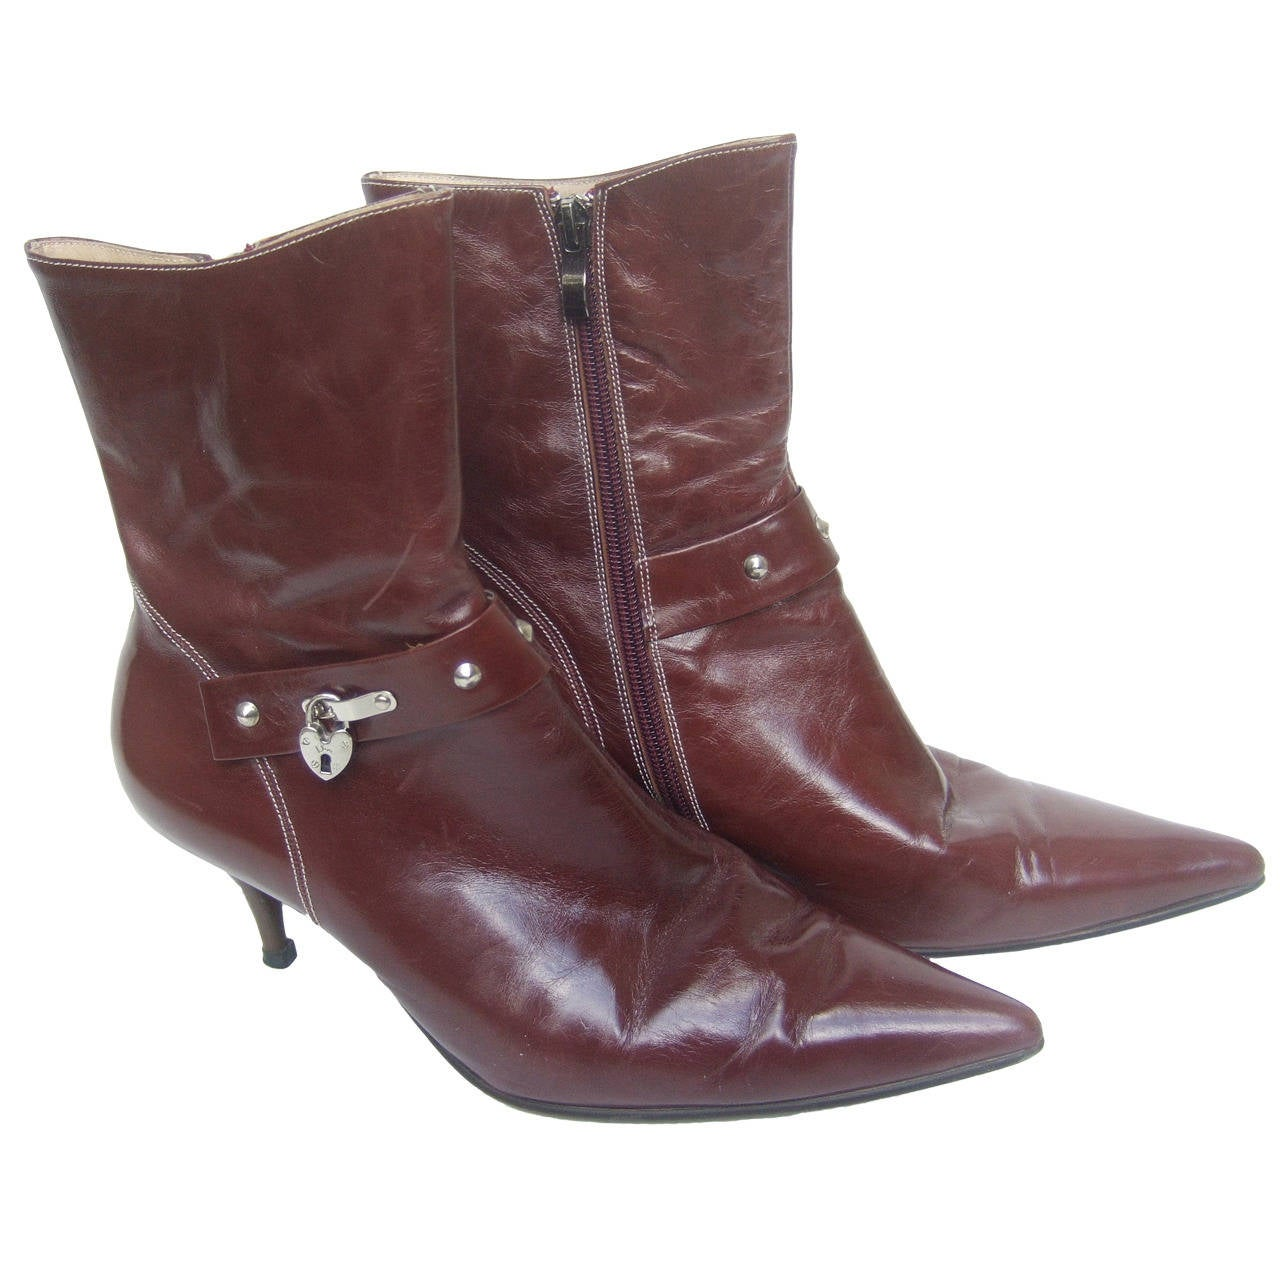 Dior Brown Leather Ankle Boots with Lock & Key Charms Size 40